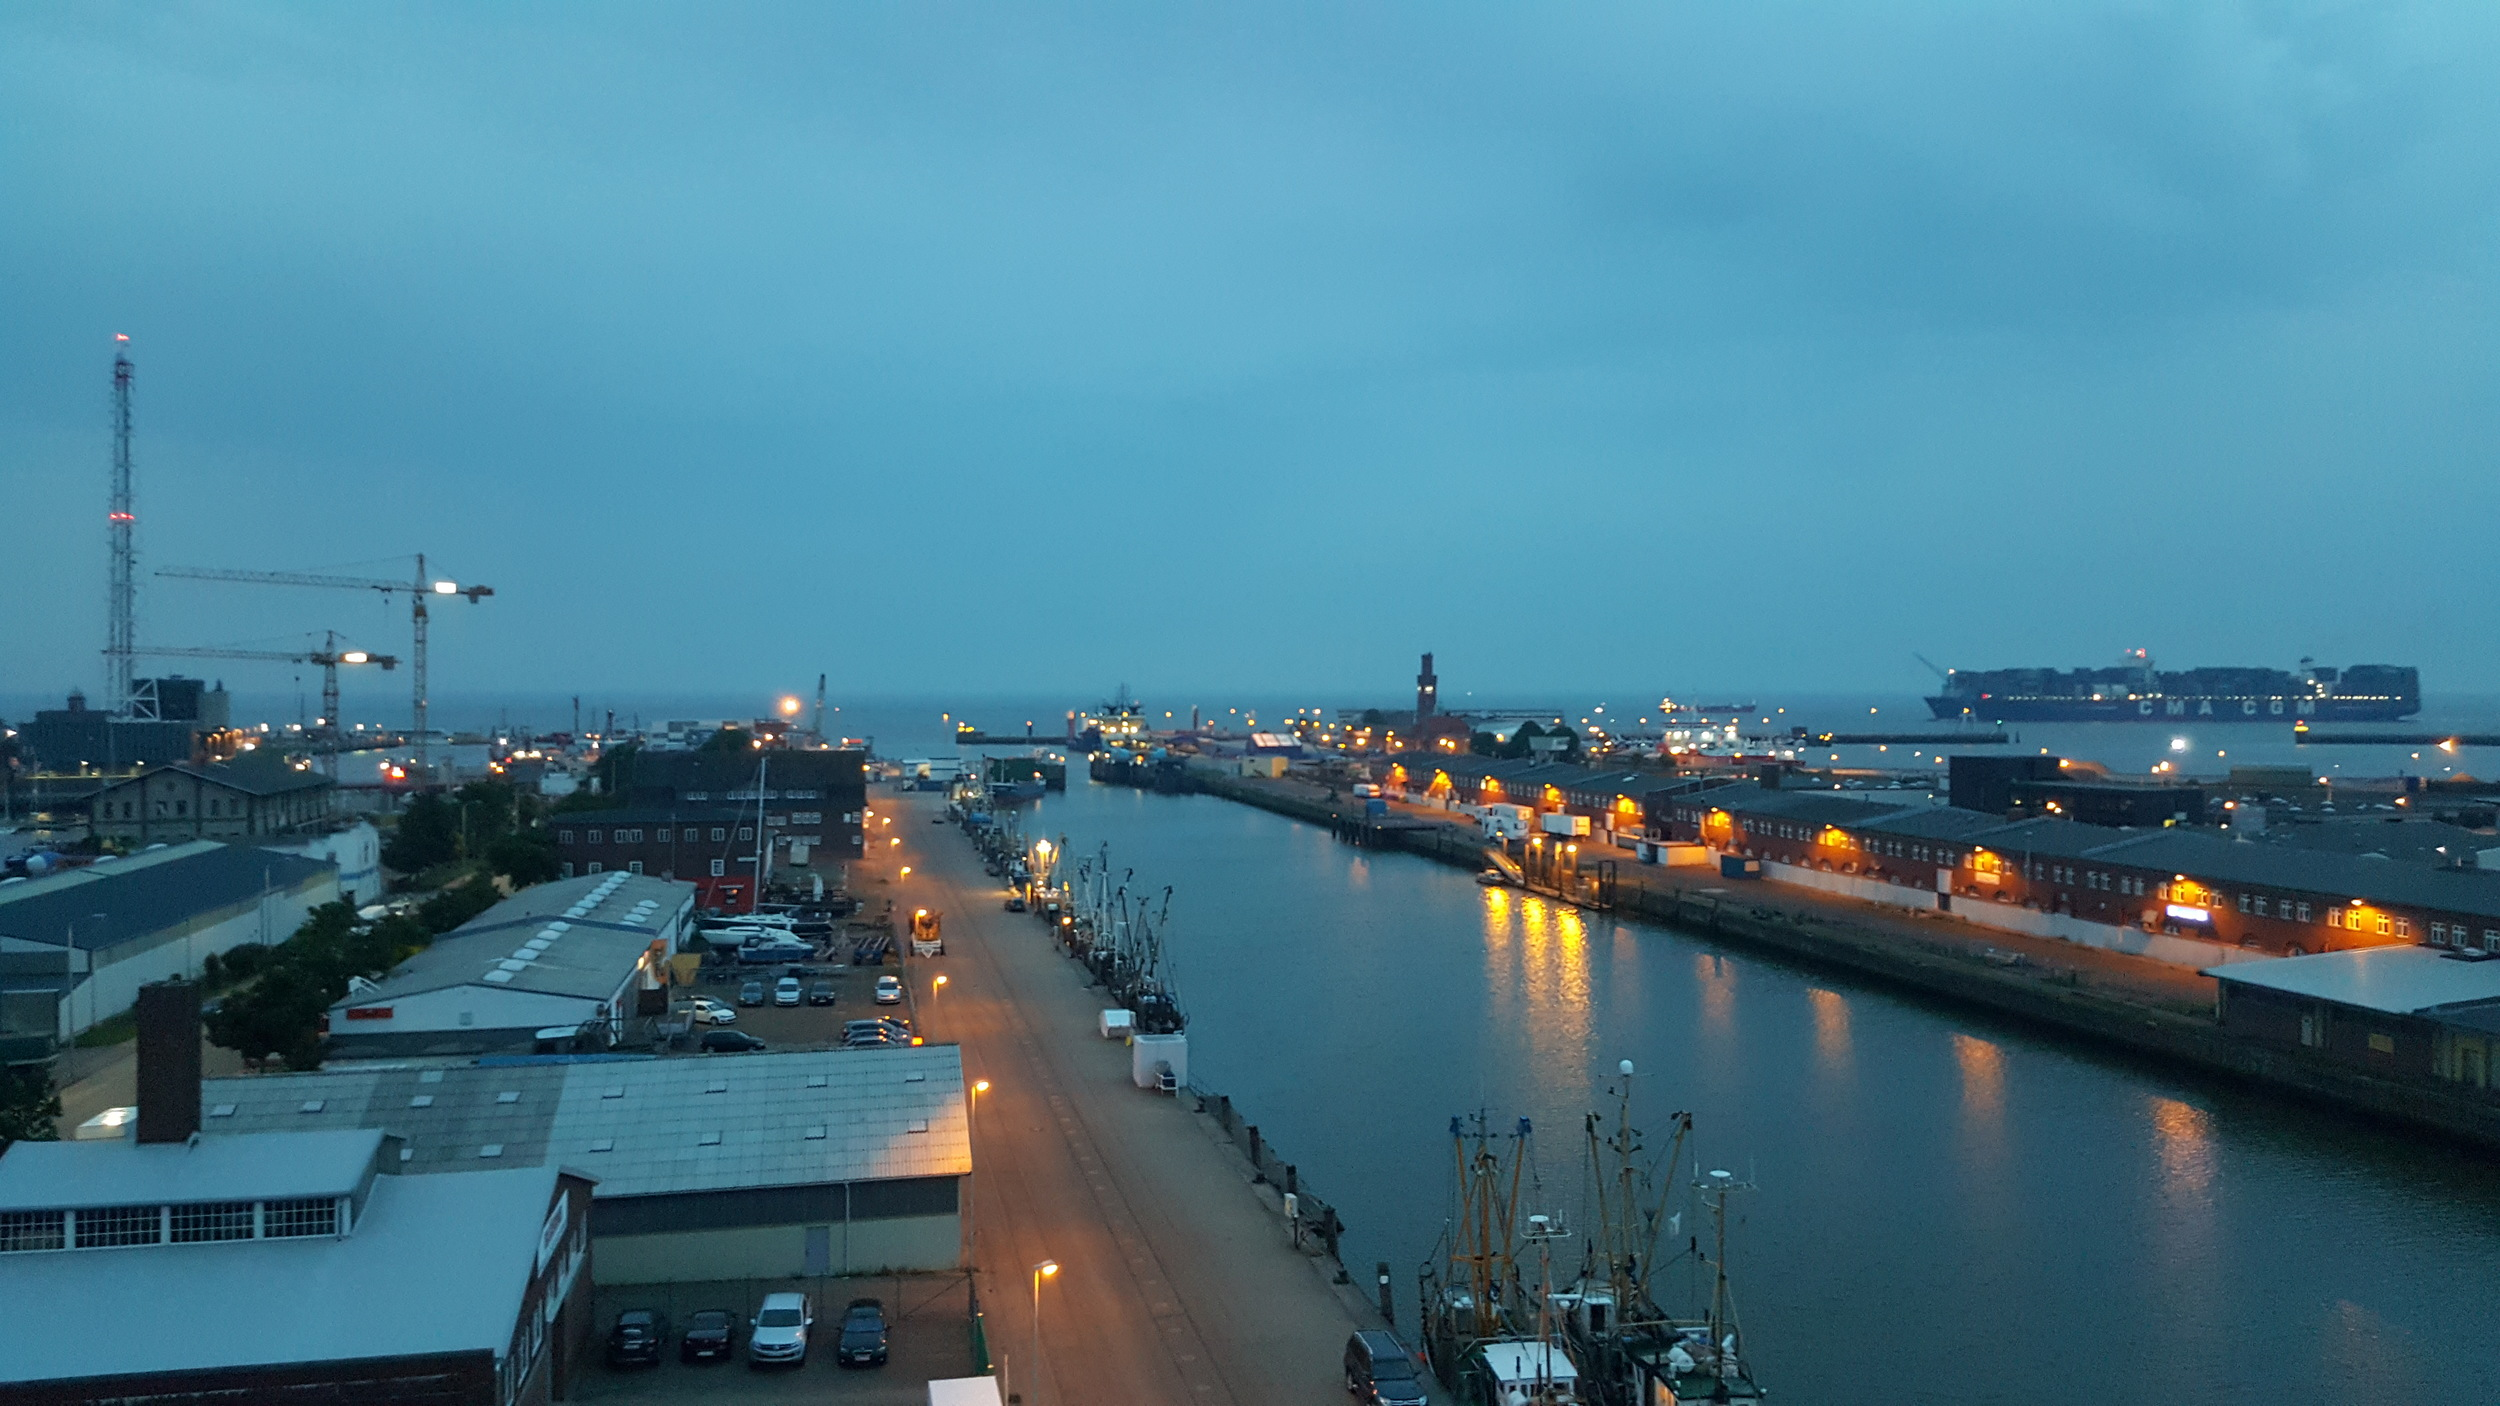 The terrace of the Havenhotel offers breathtaking views of the Elbe and North Sea.